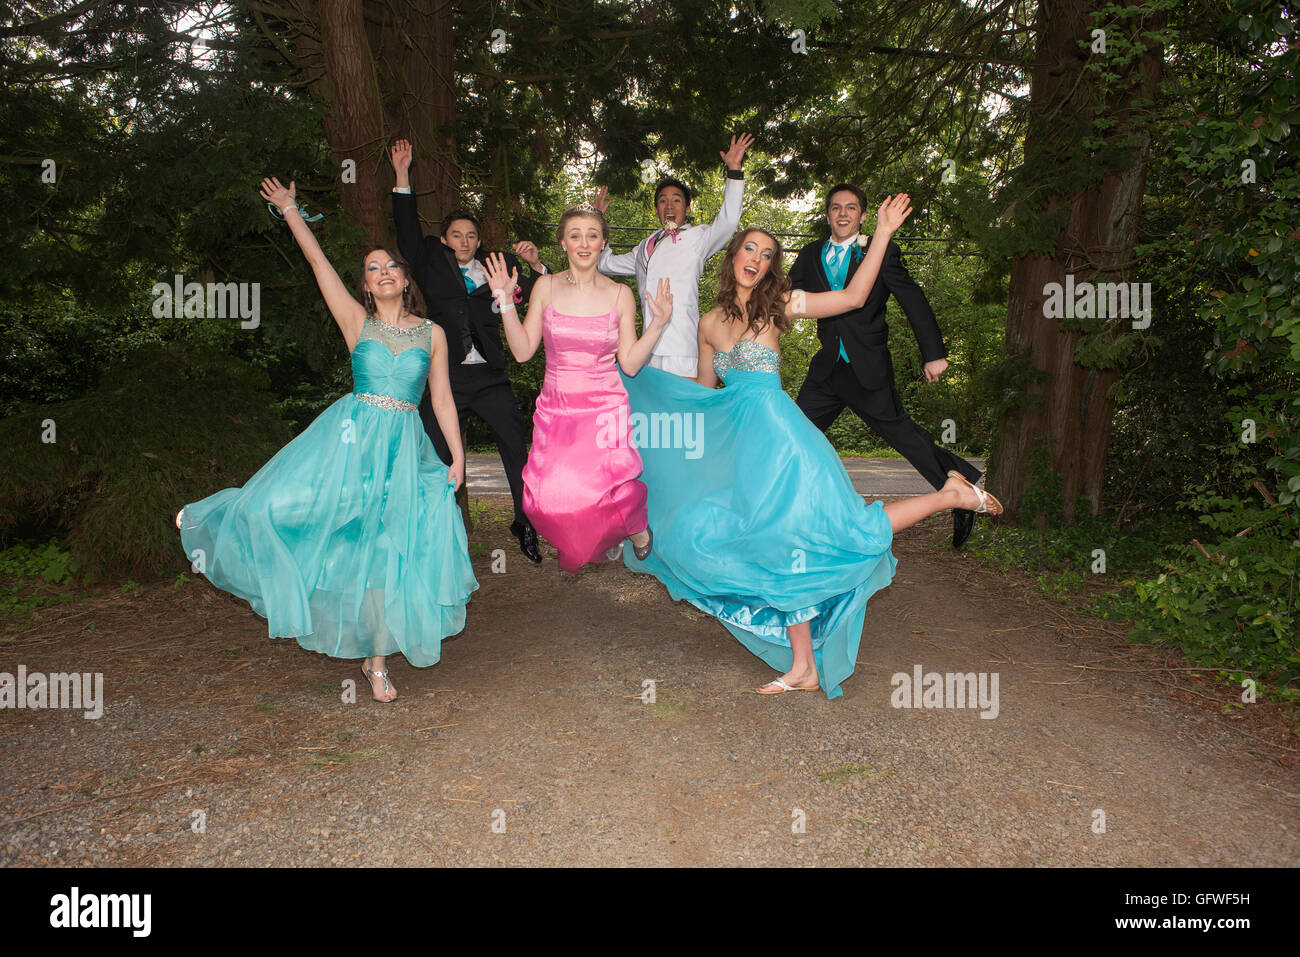 A group of friends on their way to their princess themed high school senior prom. - Stock Image